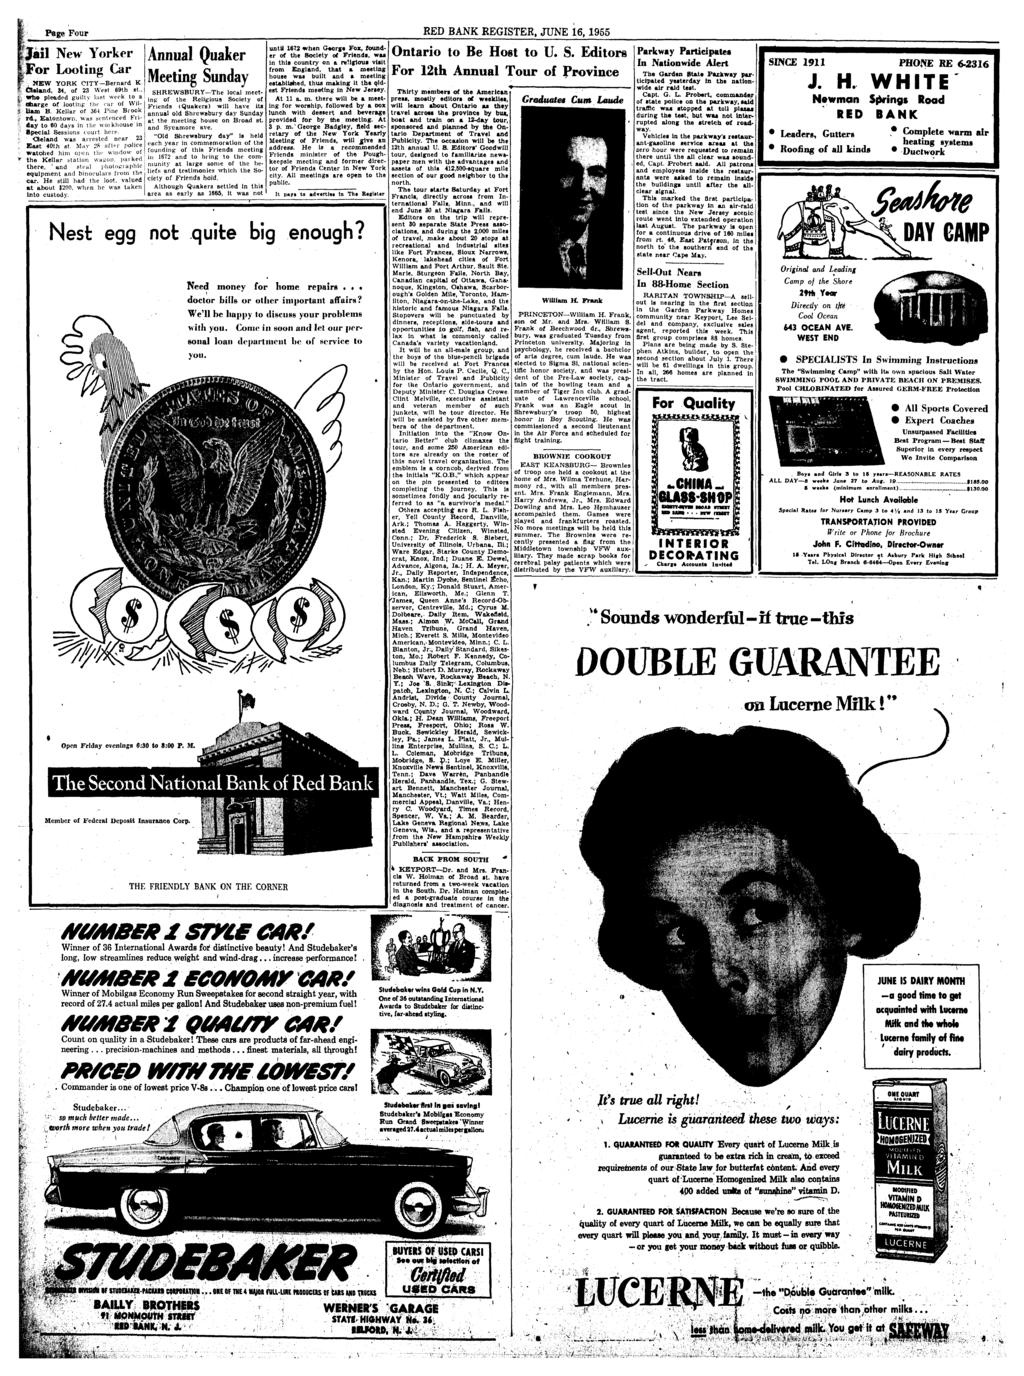 Red Bank Register For All Departments Call Pdf Heater And Defroster Wiring Diagram 1954 Studebaker Champion Commander Page Four June 16 1955 Ijail New Yorker Looting